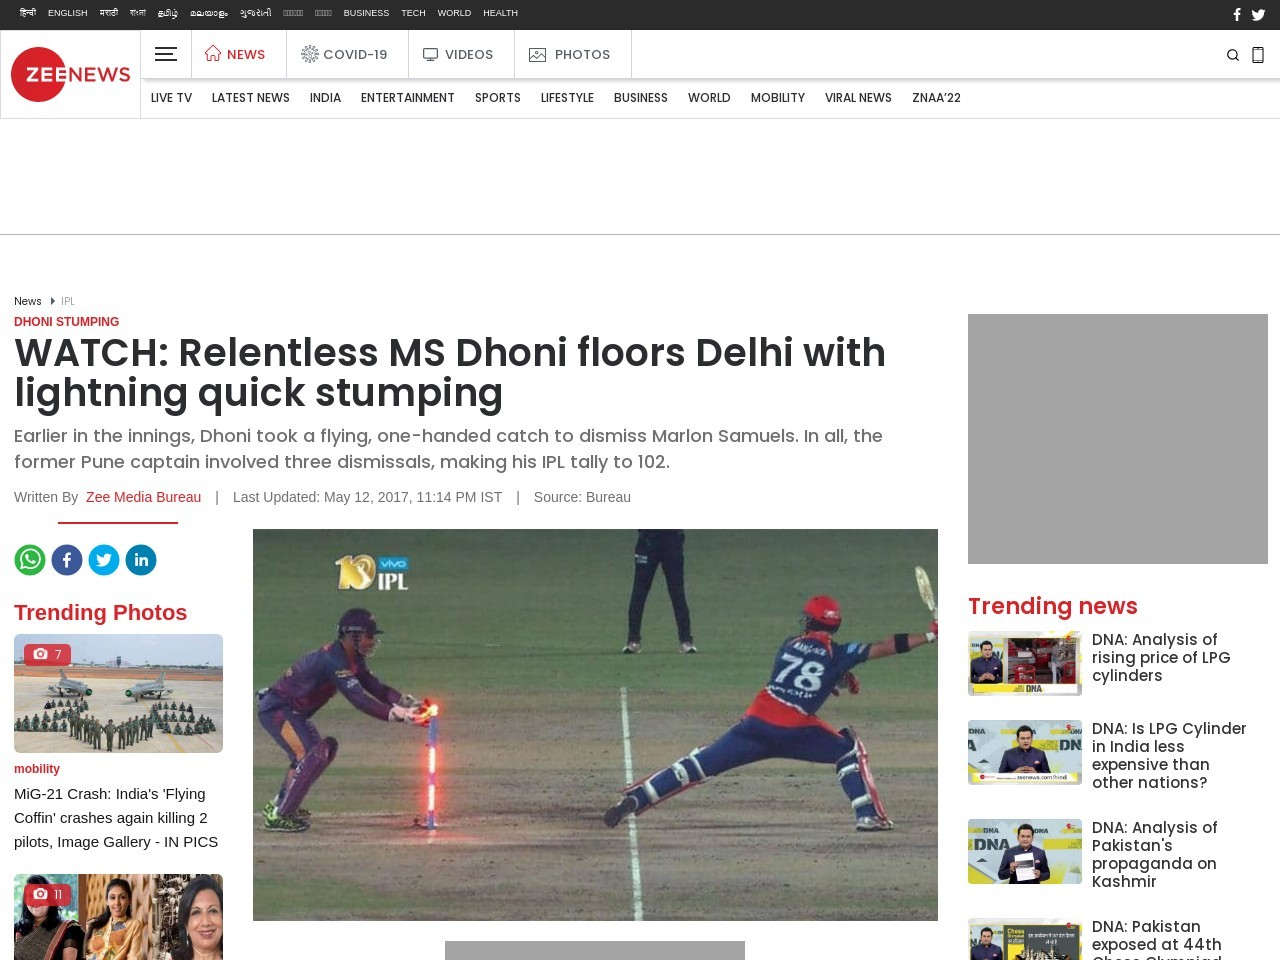 WATCH: Relentless MS Dhoni floors Delhi with lightning quick stumping